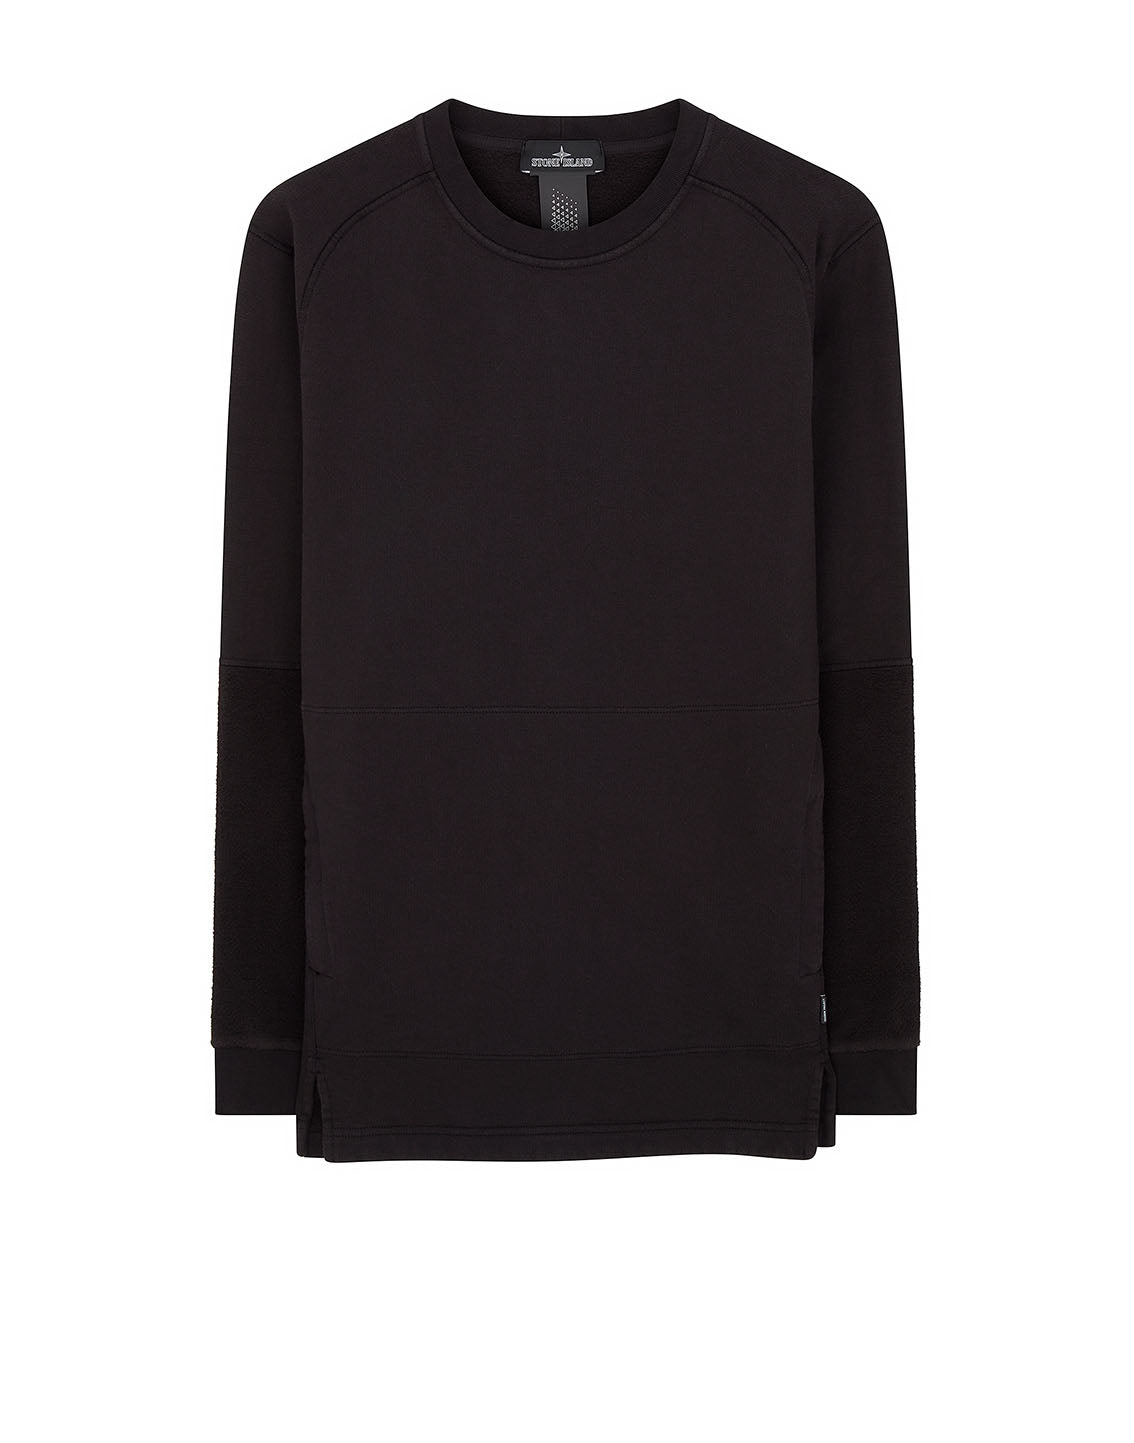 60106 Invert Crewneck Sweatshirt in Black